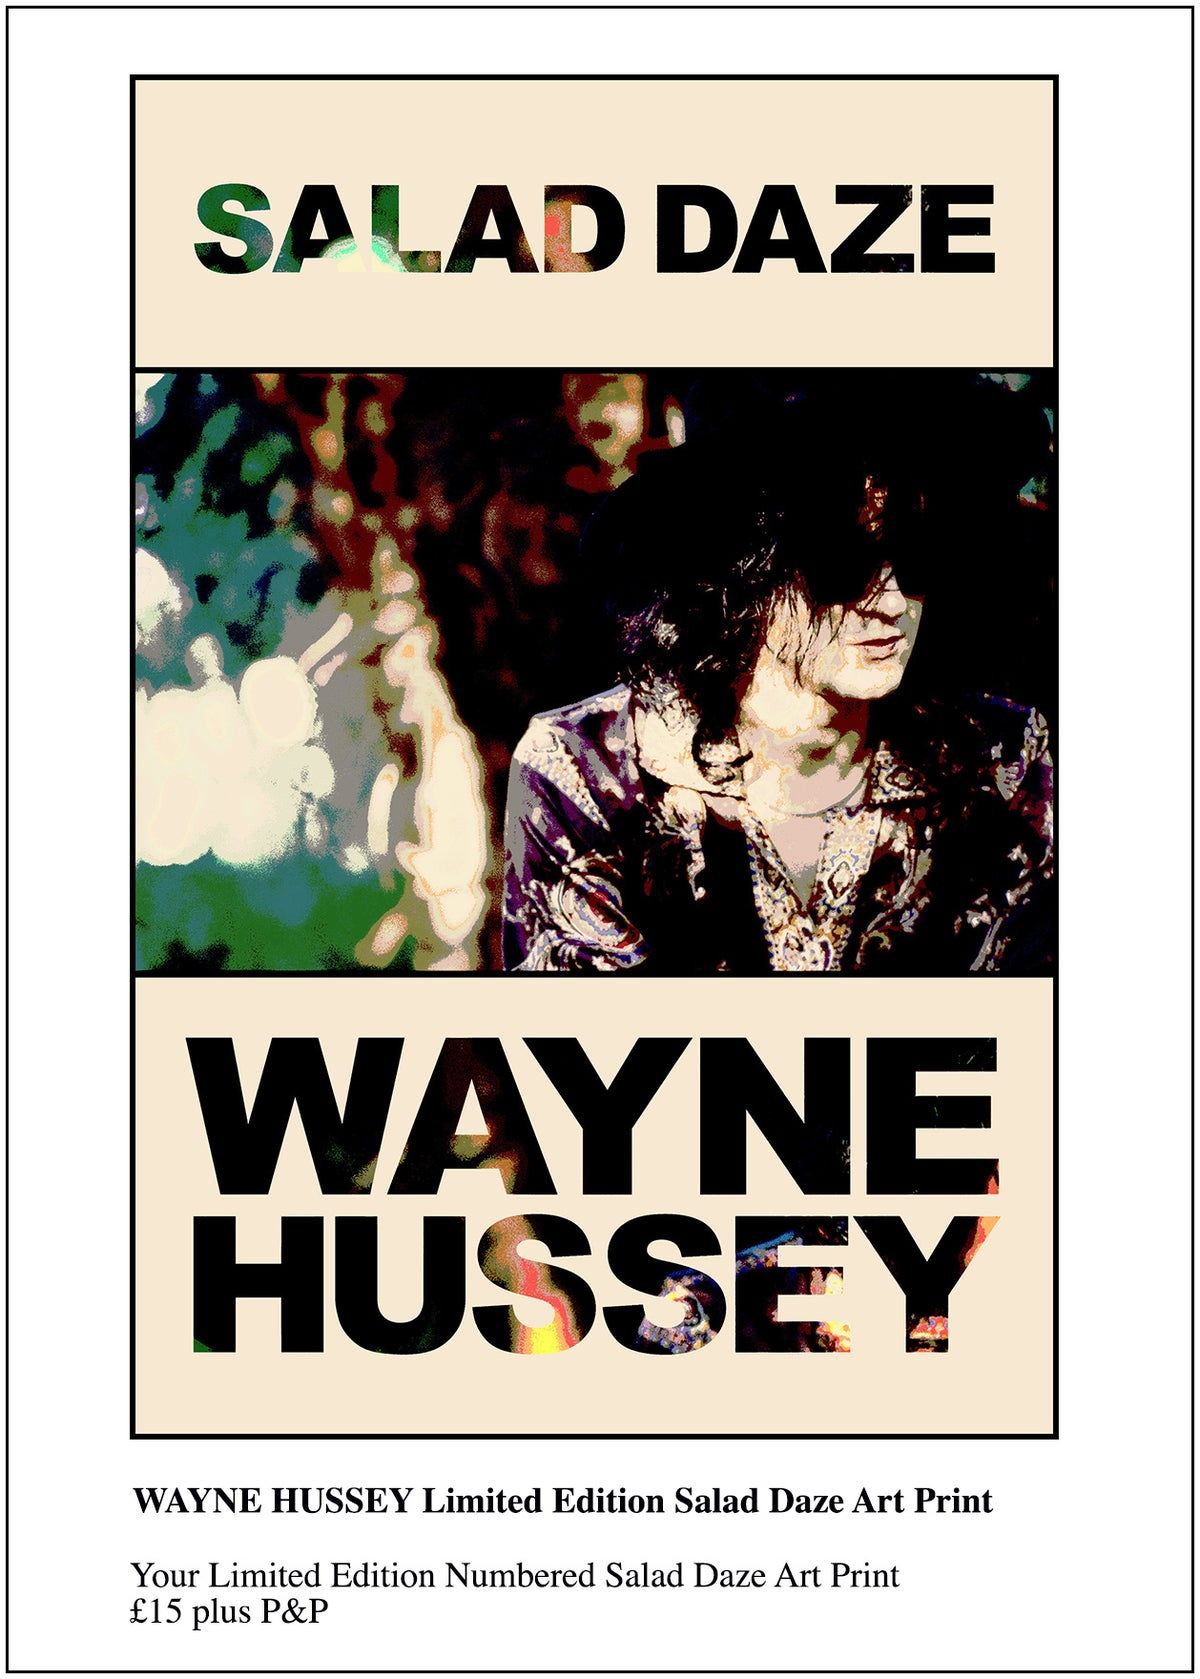 Image of WAYNE HUSSEY Salad Daze Numbered Art Print